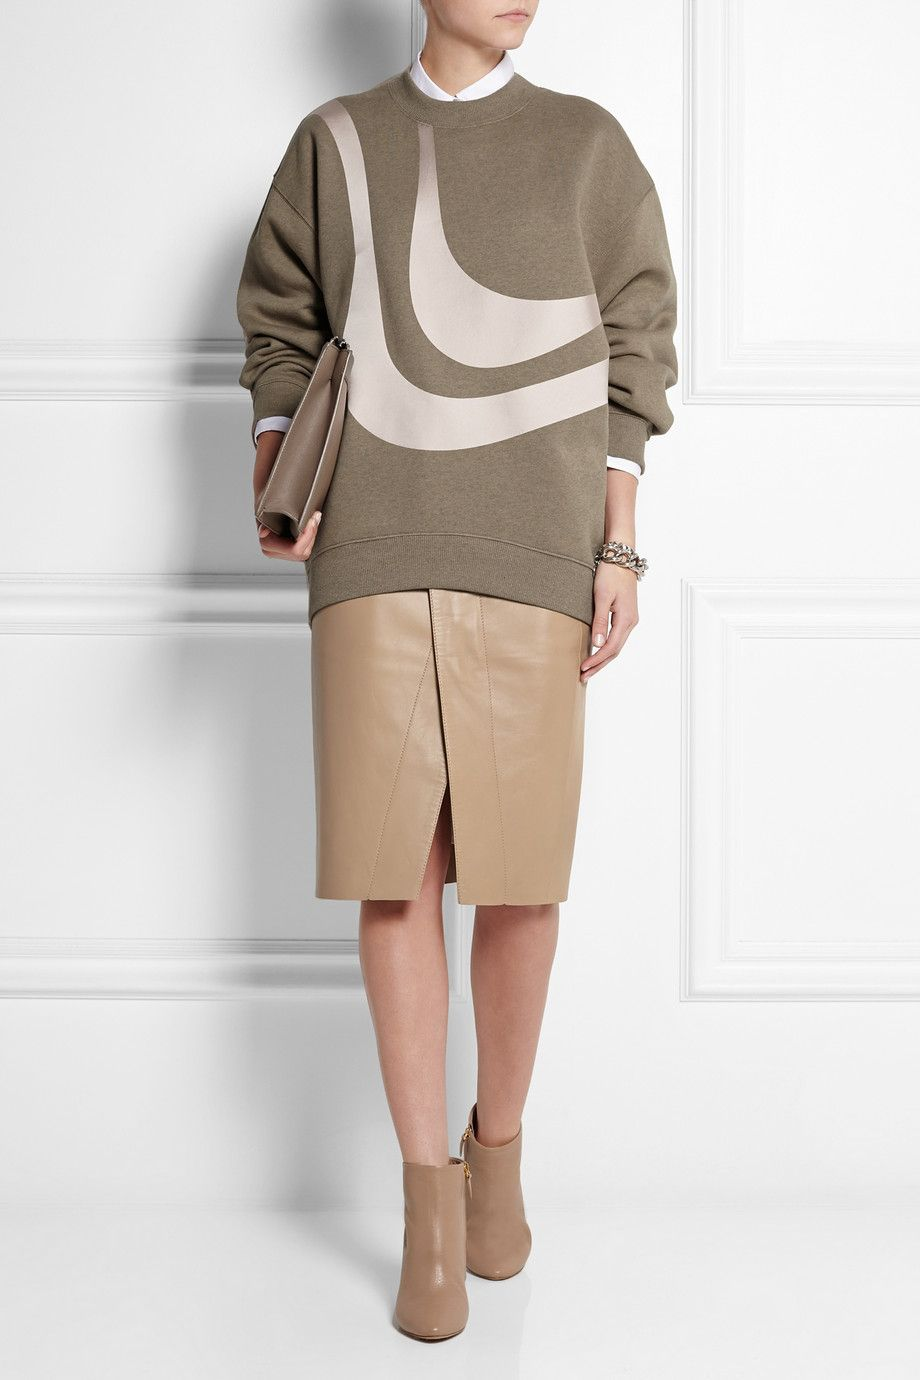 acne studios leather skirt 163 900 chlo 201 gold trimmed